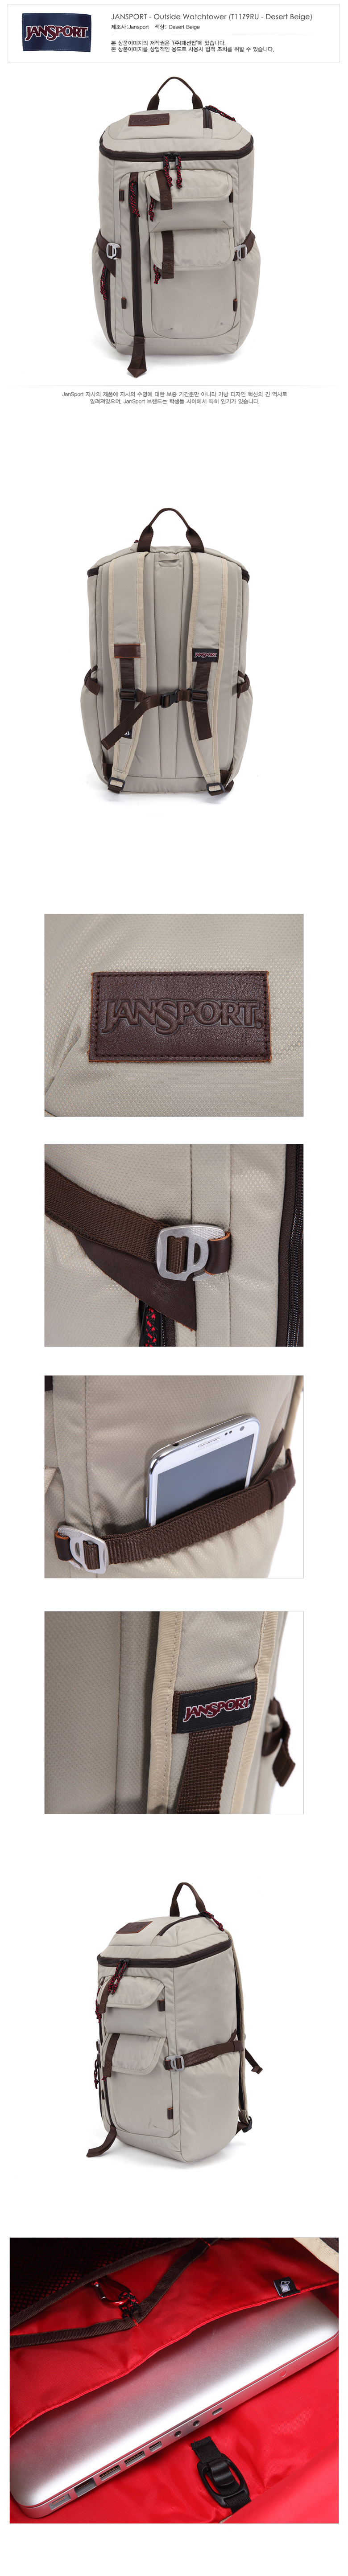 [잔스포츠]JANSPORT - Outside Watchtower (T11Z9RU - Desert Beige)